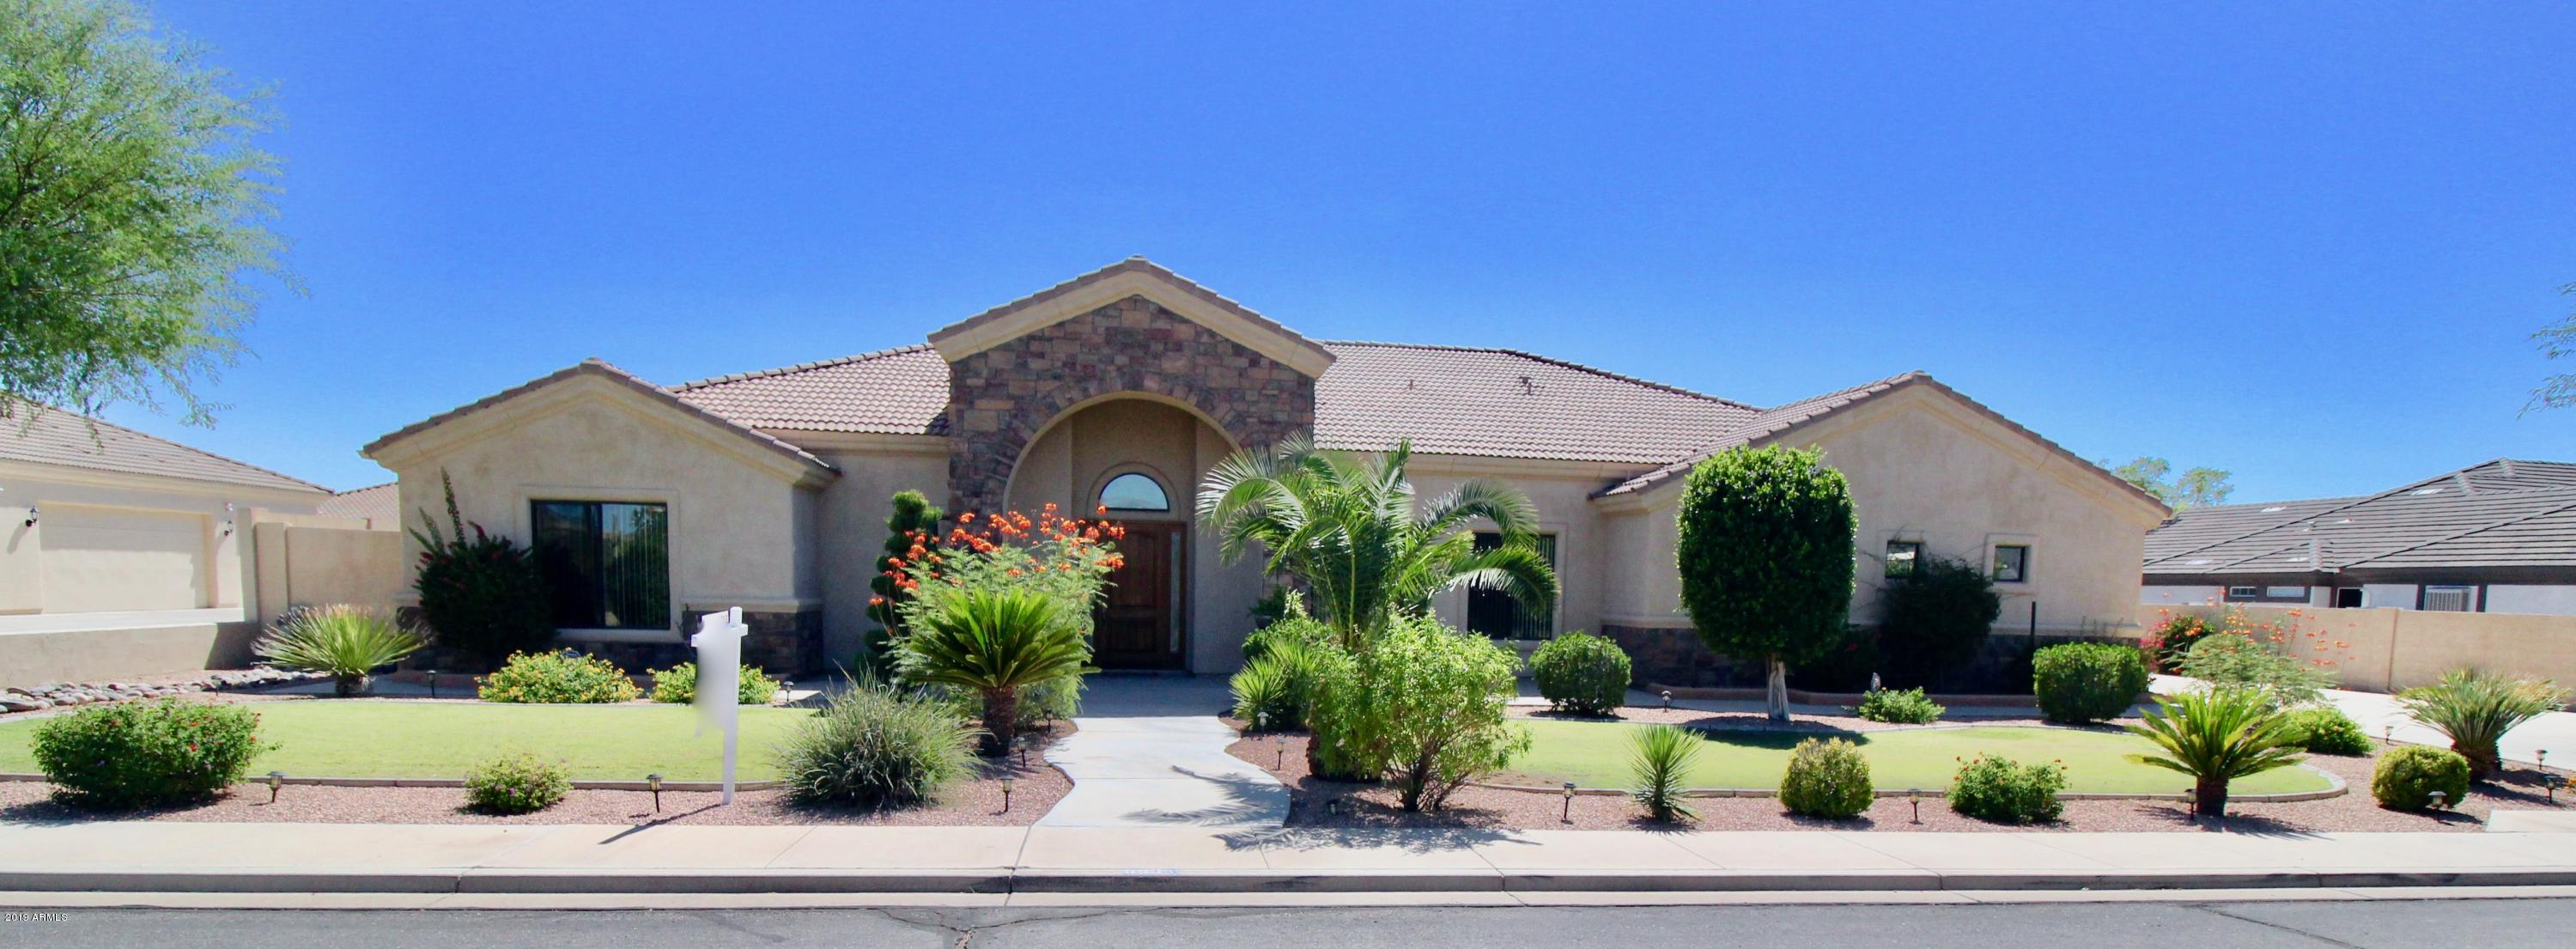 Photo of 8535 E HILLVIEW Circle, Mesa, AZ 85207